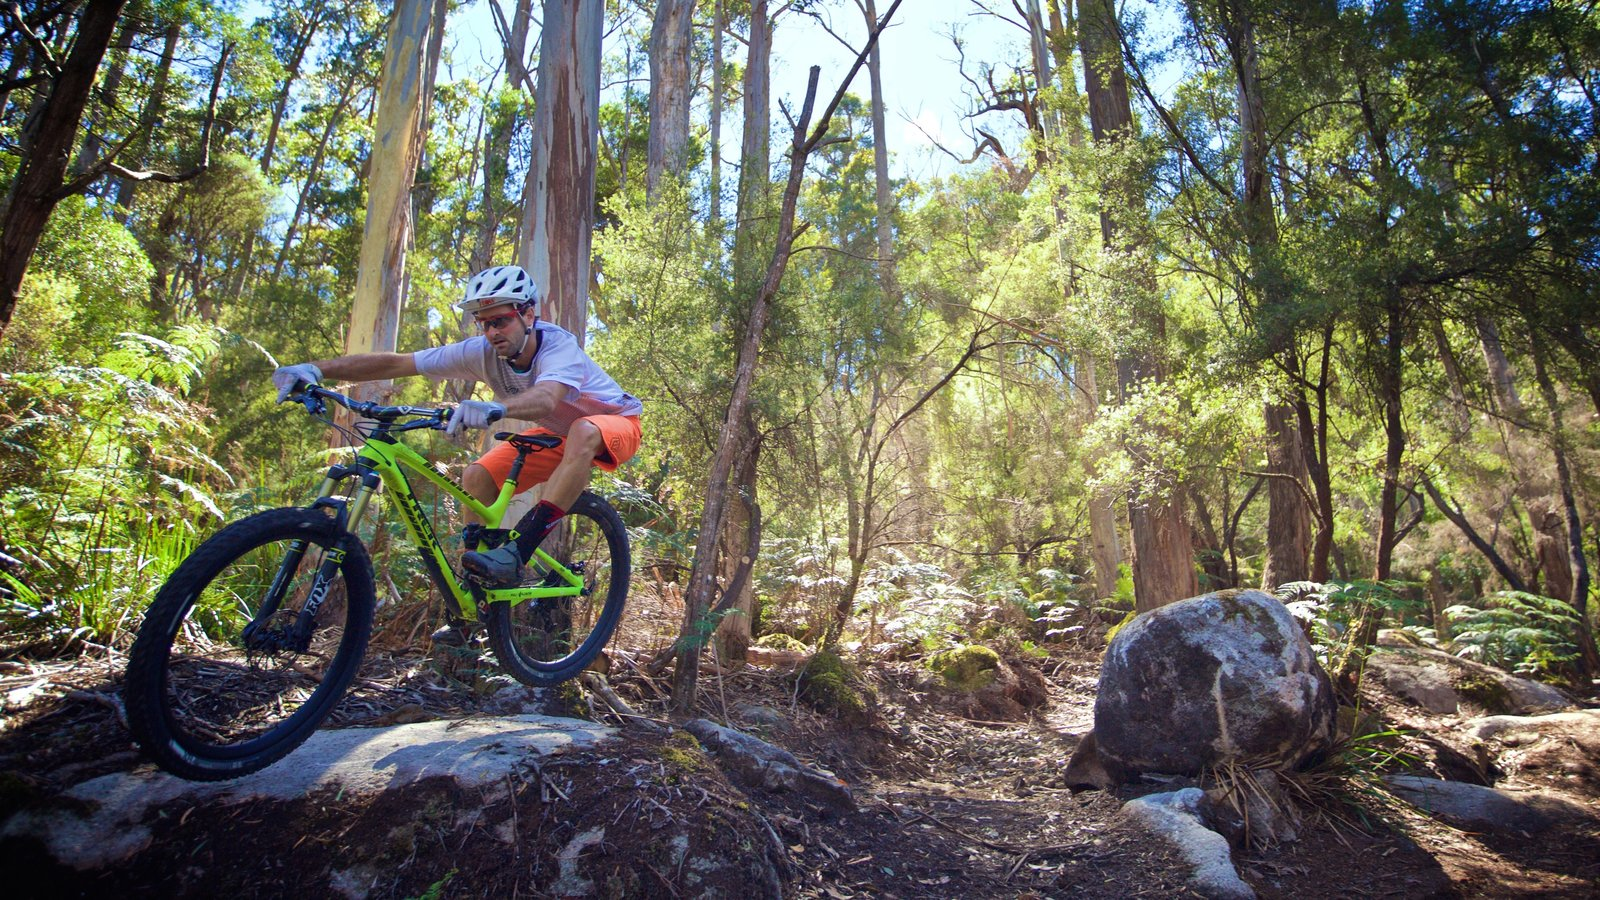 Derby featuring forests and mountain biking as well as an individual male